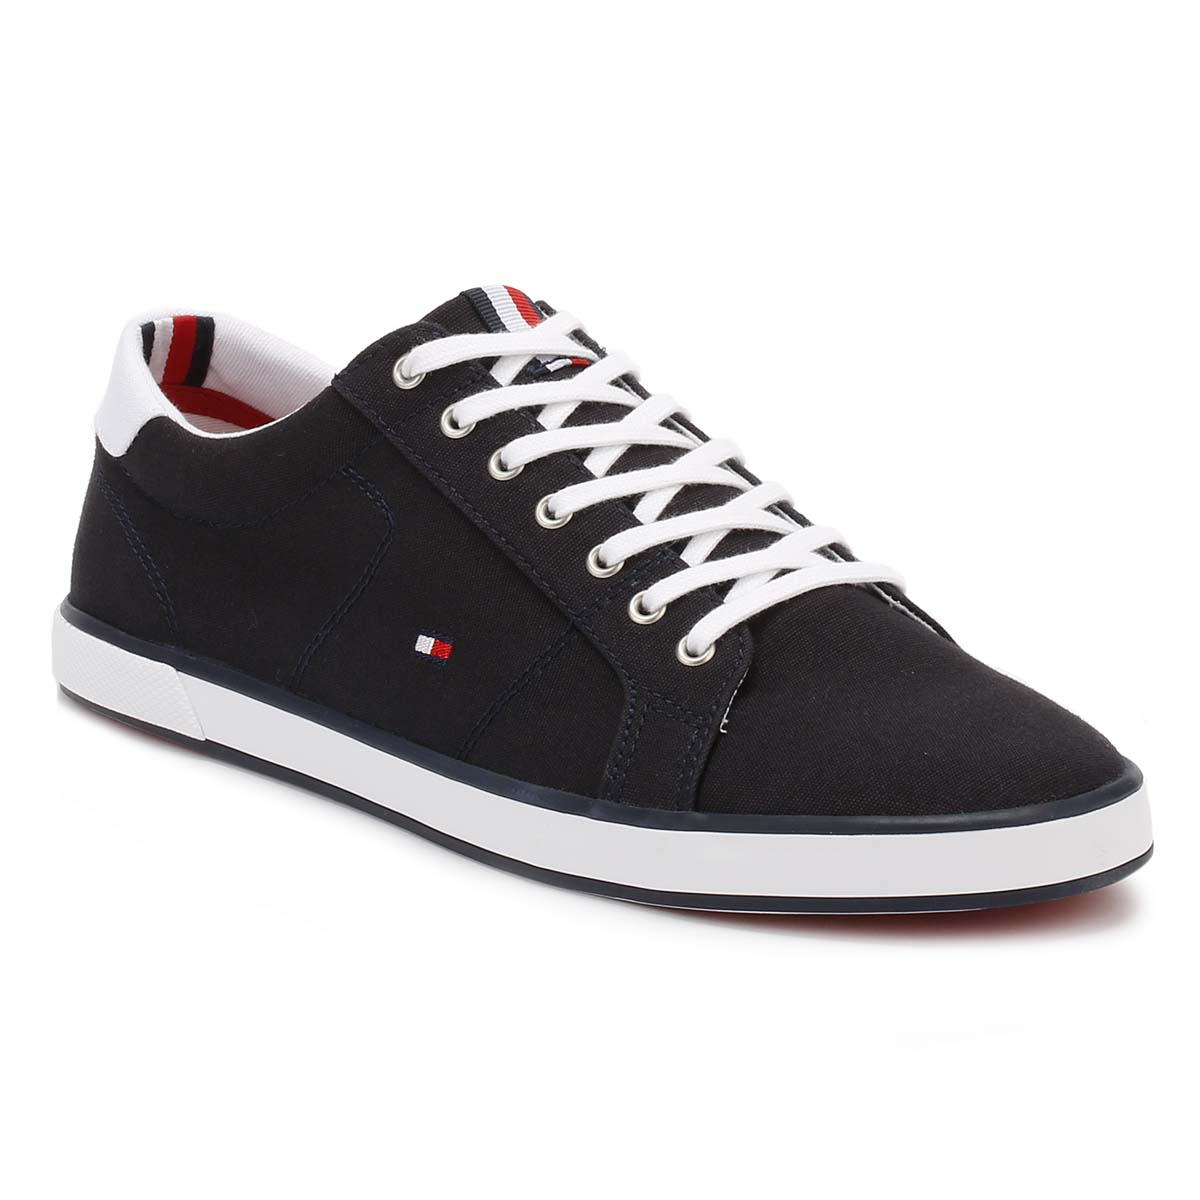 598130af2f999 Tommy Hilfiger Mens Trainers Black Midnight Harlow 1D Textile Lace ...